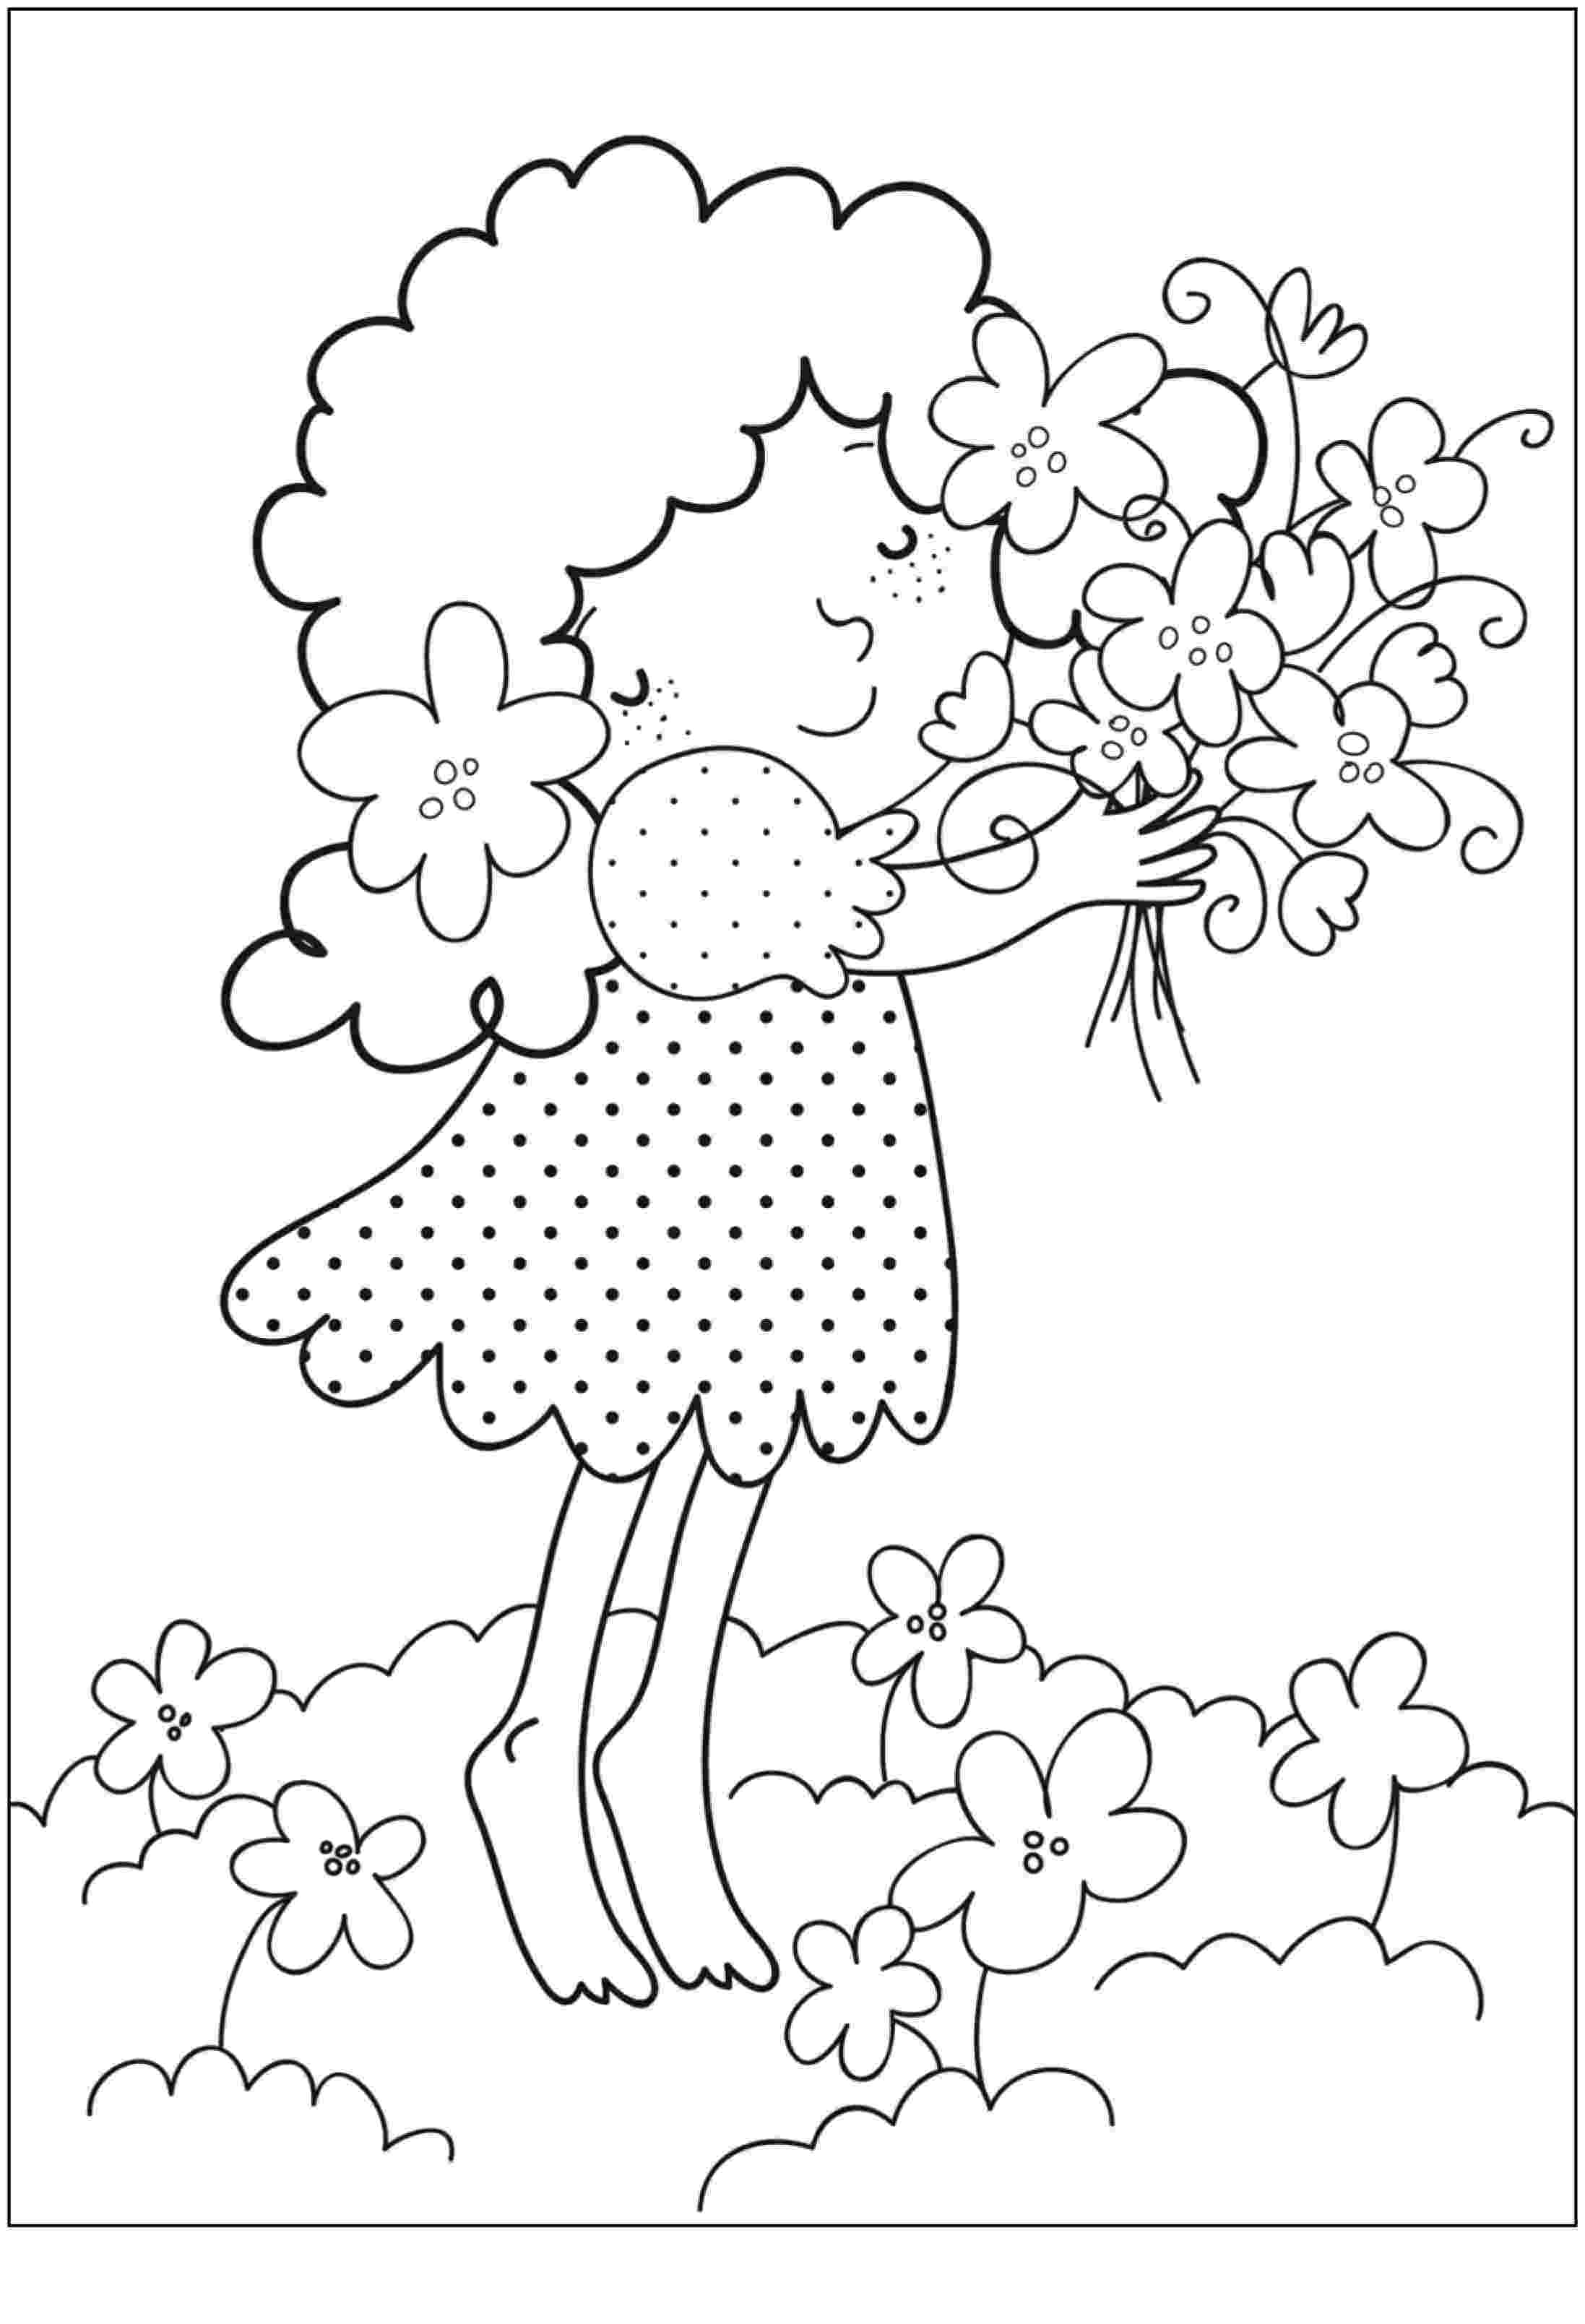 flower printable pictures free spring flower printable coloring image flower pictures flower printable